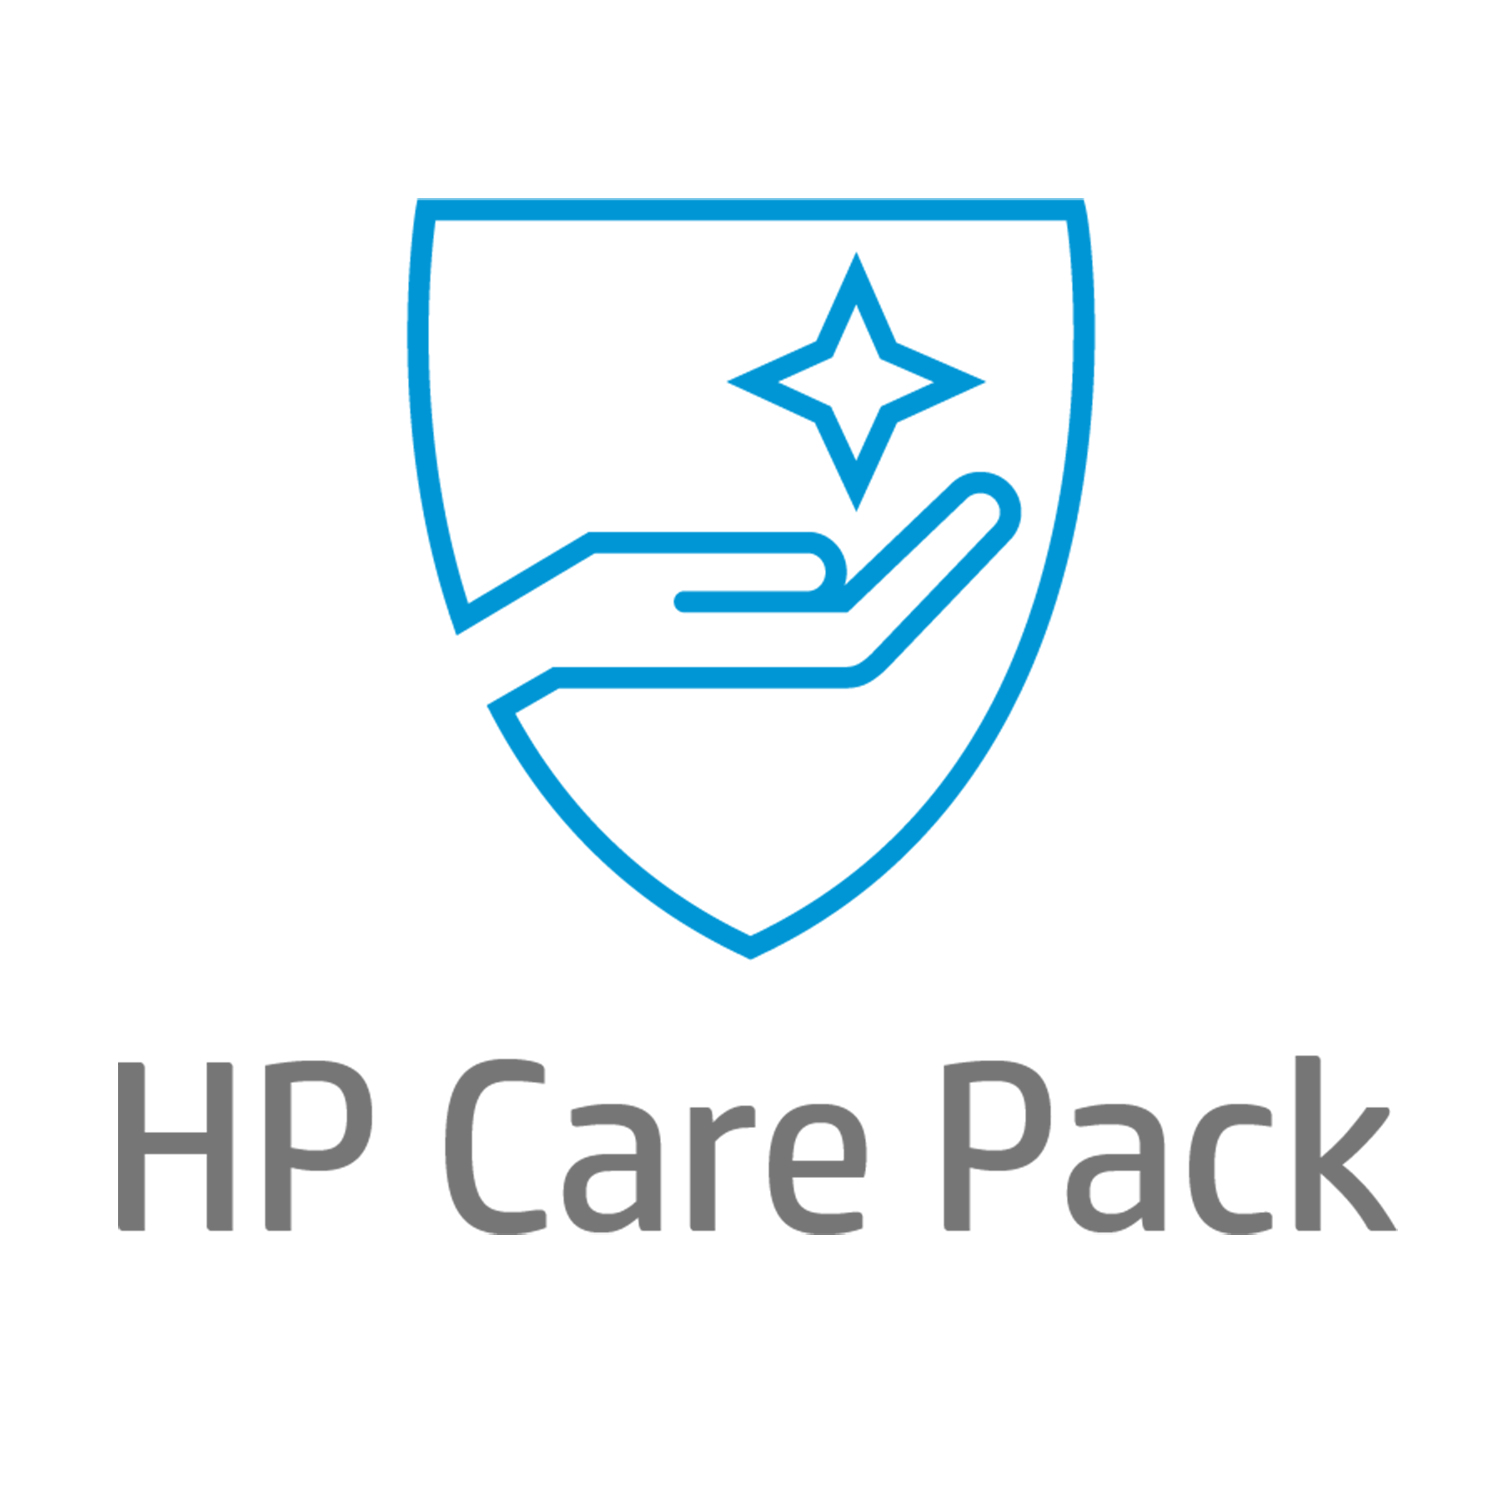 HP 3 year Next Business Day Onsite Hardware Support w/Travel/ADP-G2/DMR for Notebooks